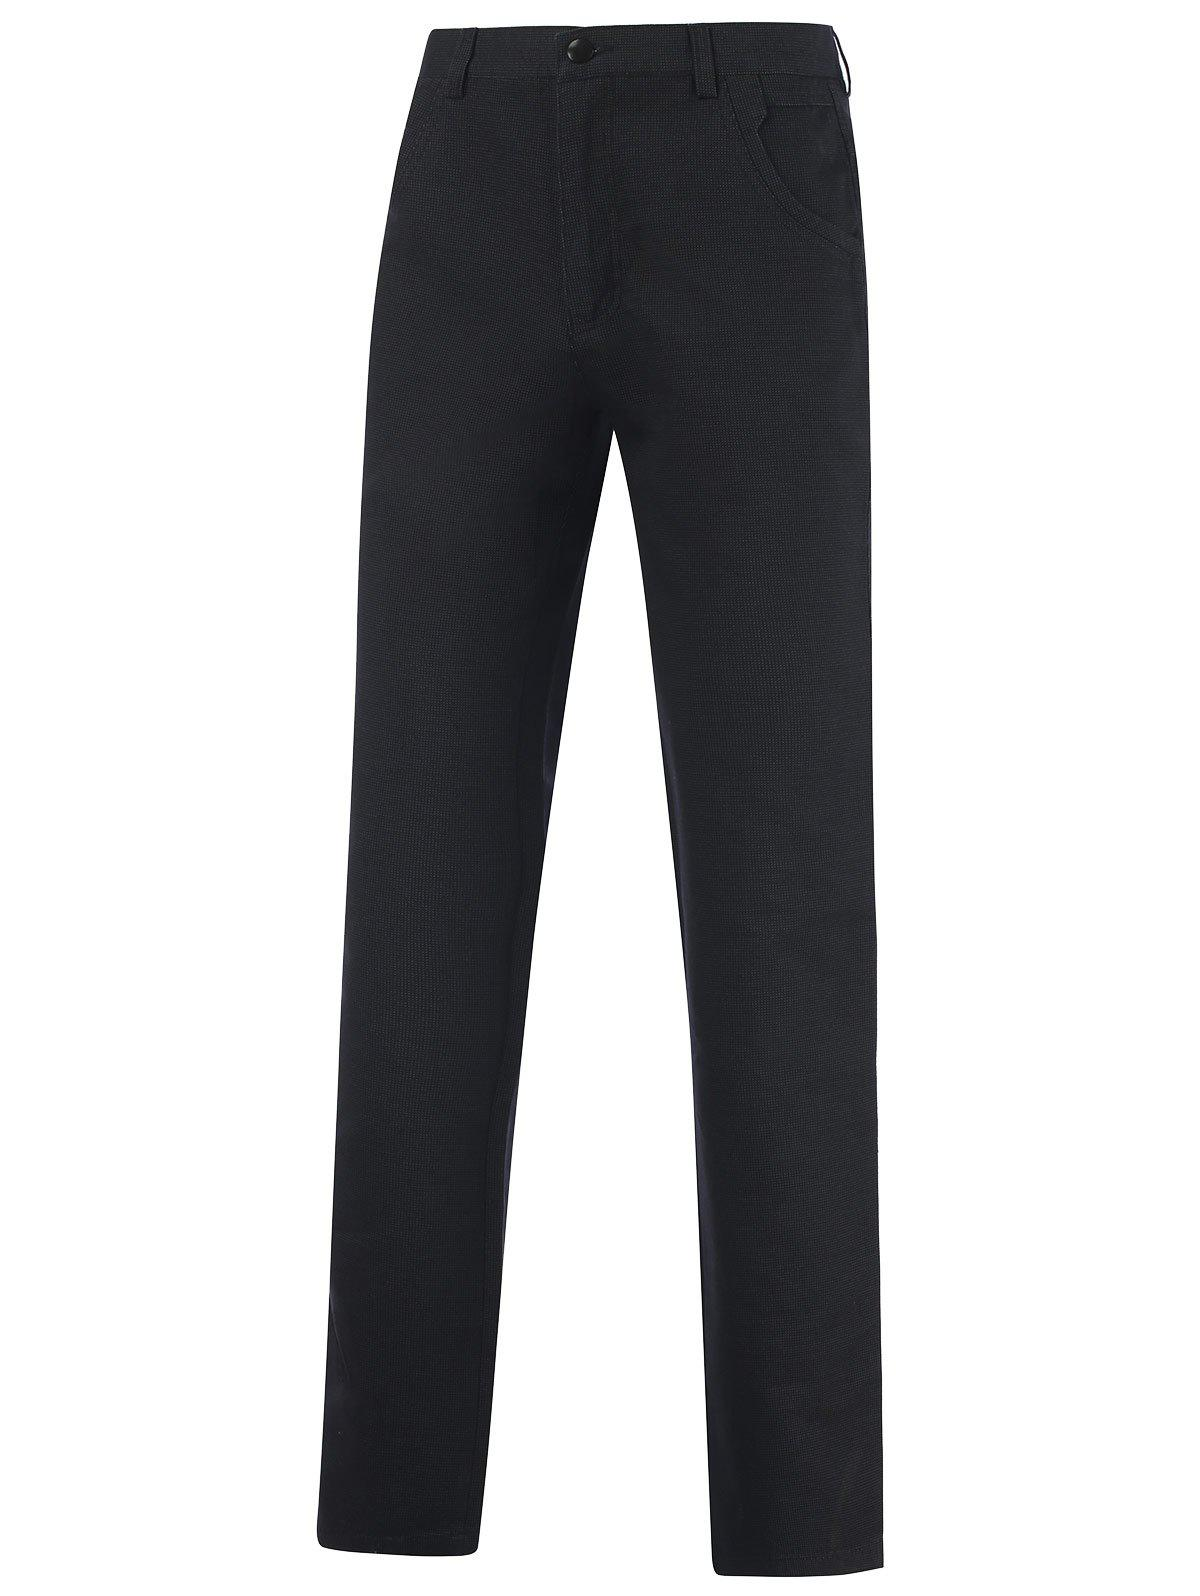 Buy Casual Zipper Fly Straight Leg Tailored Pants